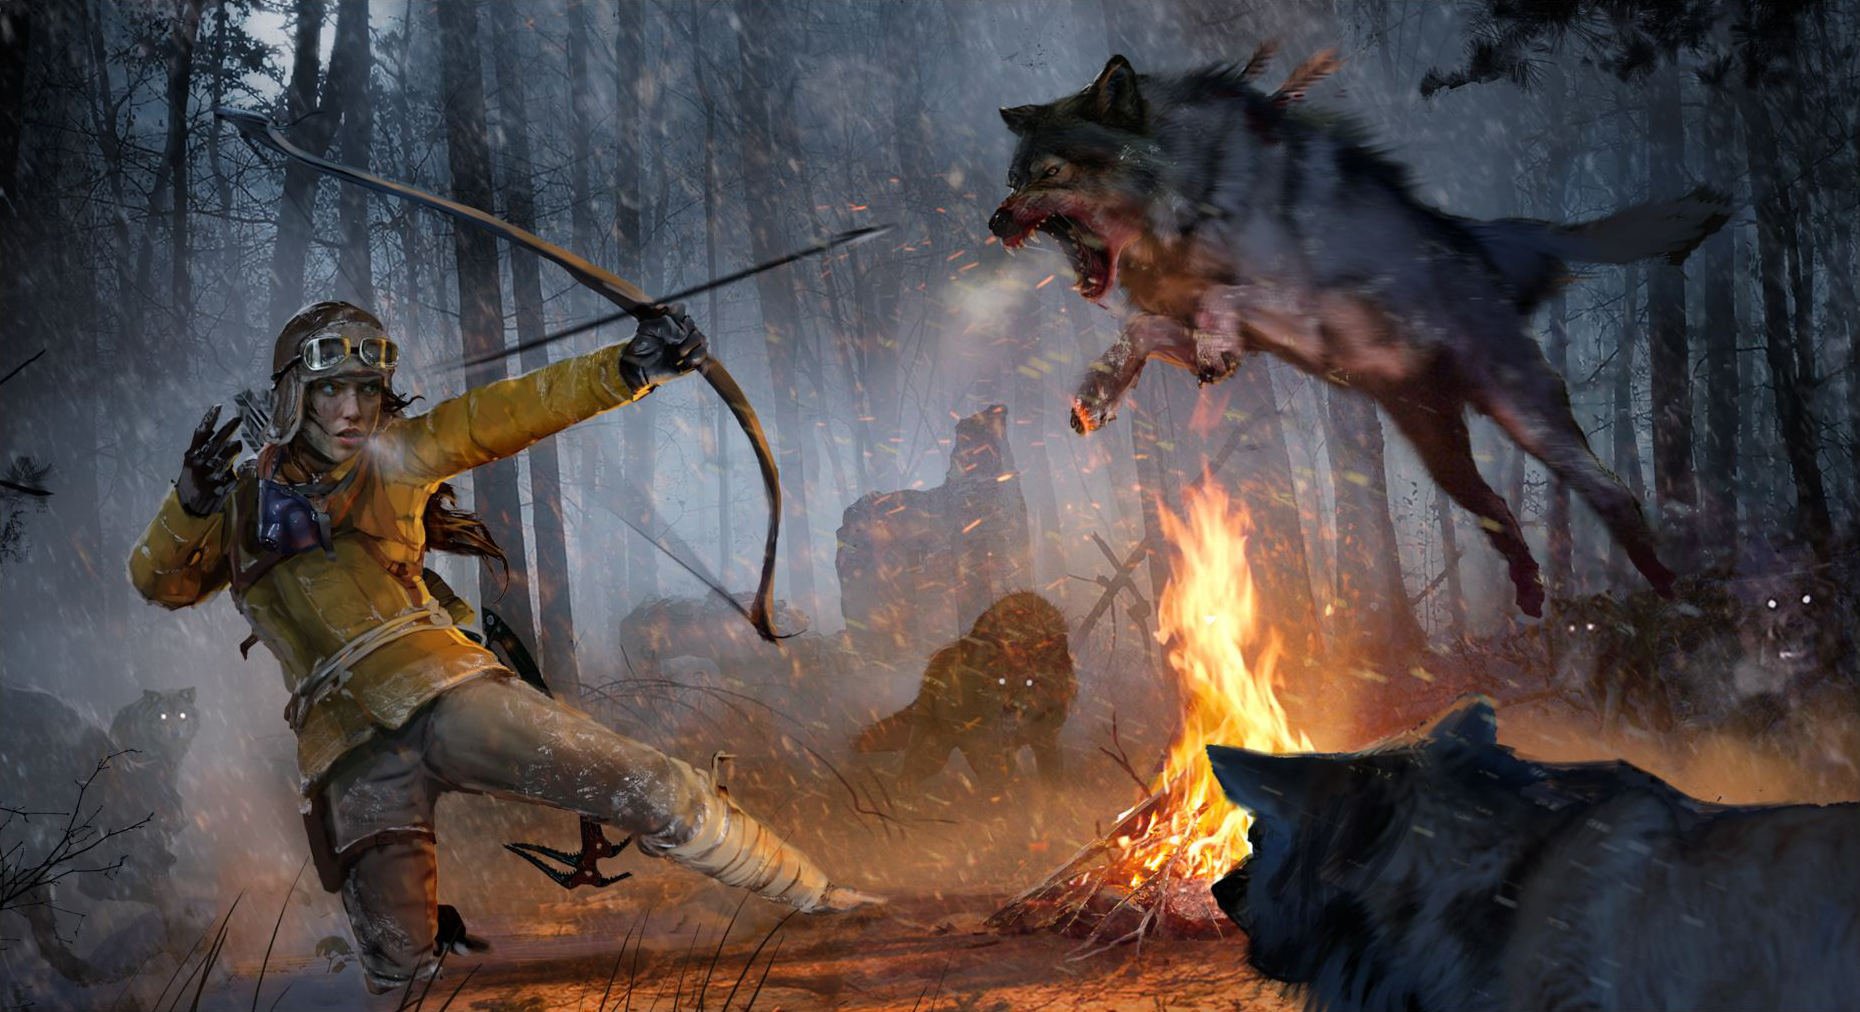 rise of the tomb raider endurance mode now available gameplay footage